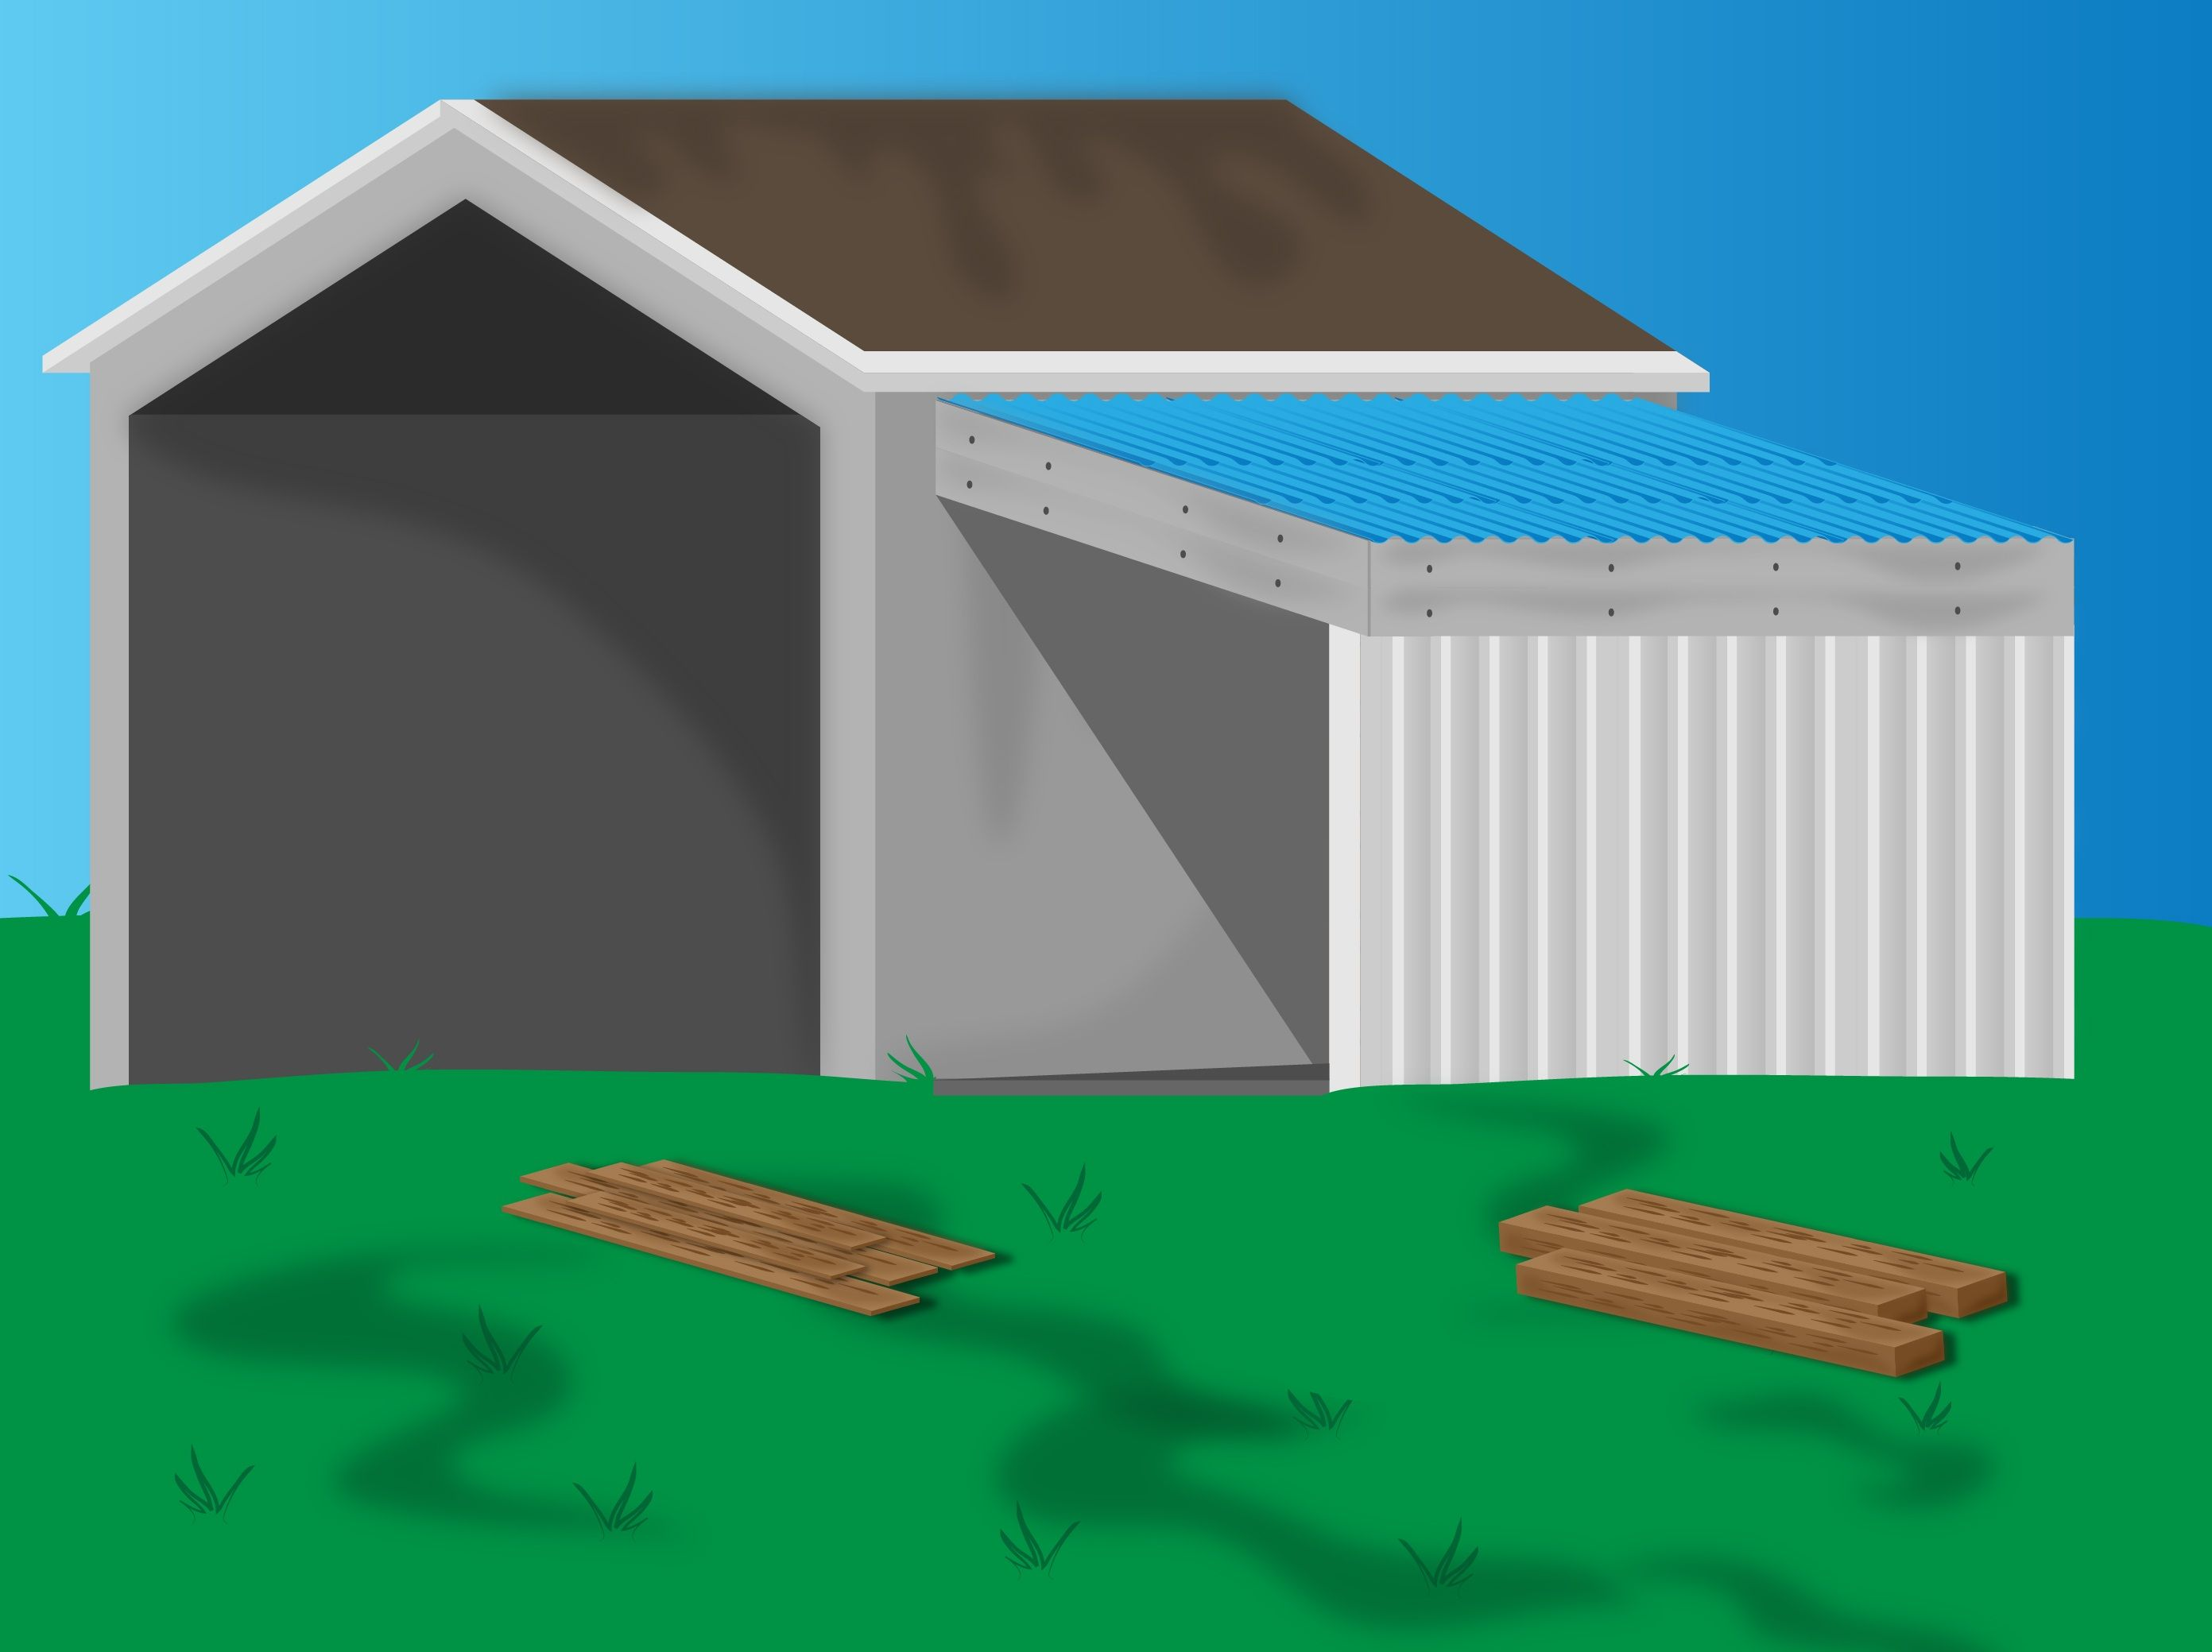 How To Add A Lean To Onto A Shed Shed Plans Diy Shed Built In Storage